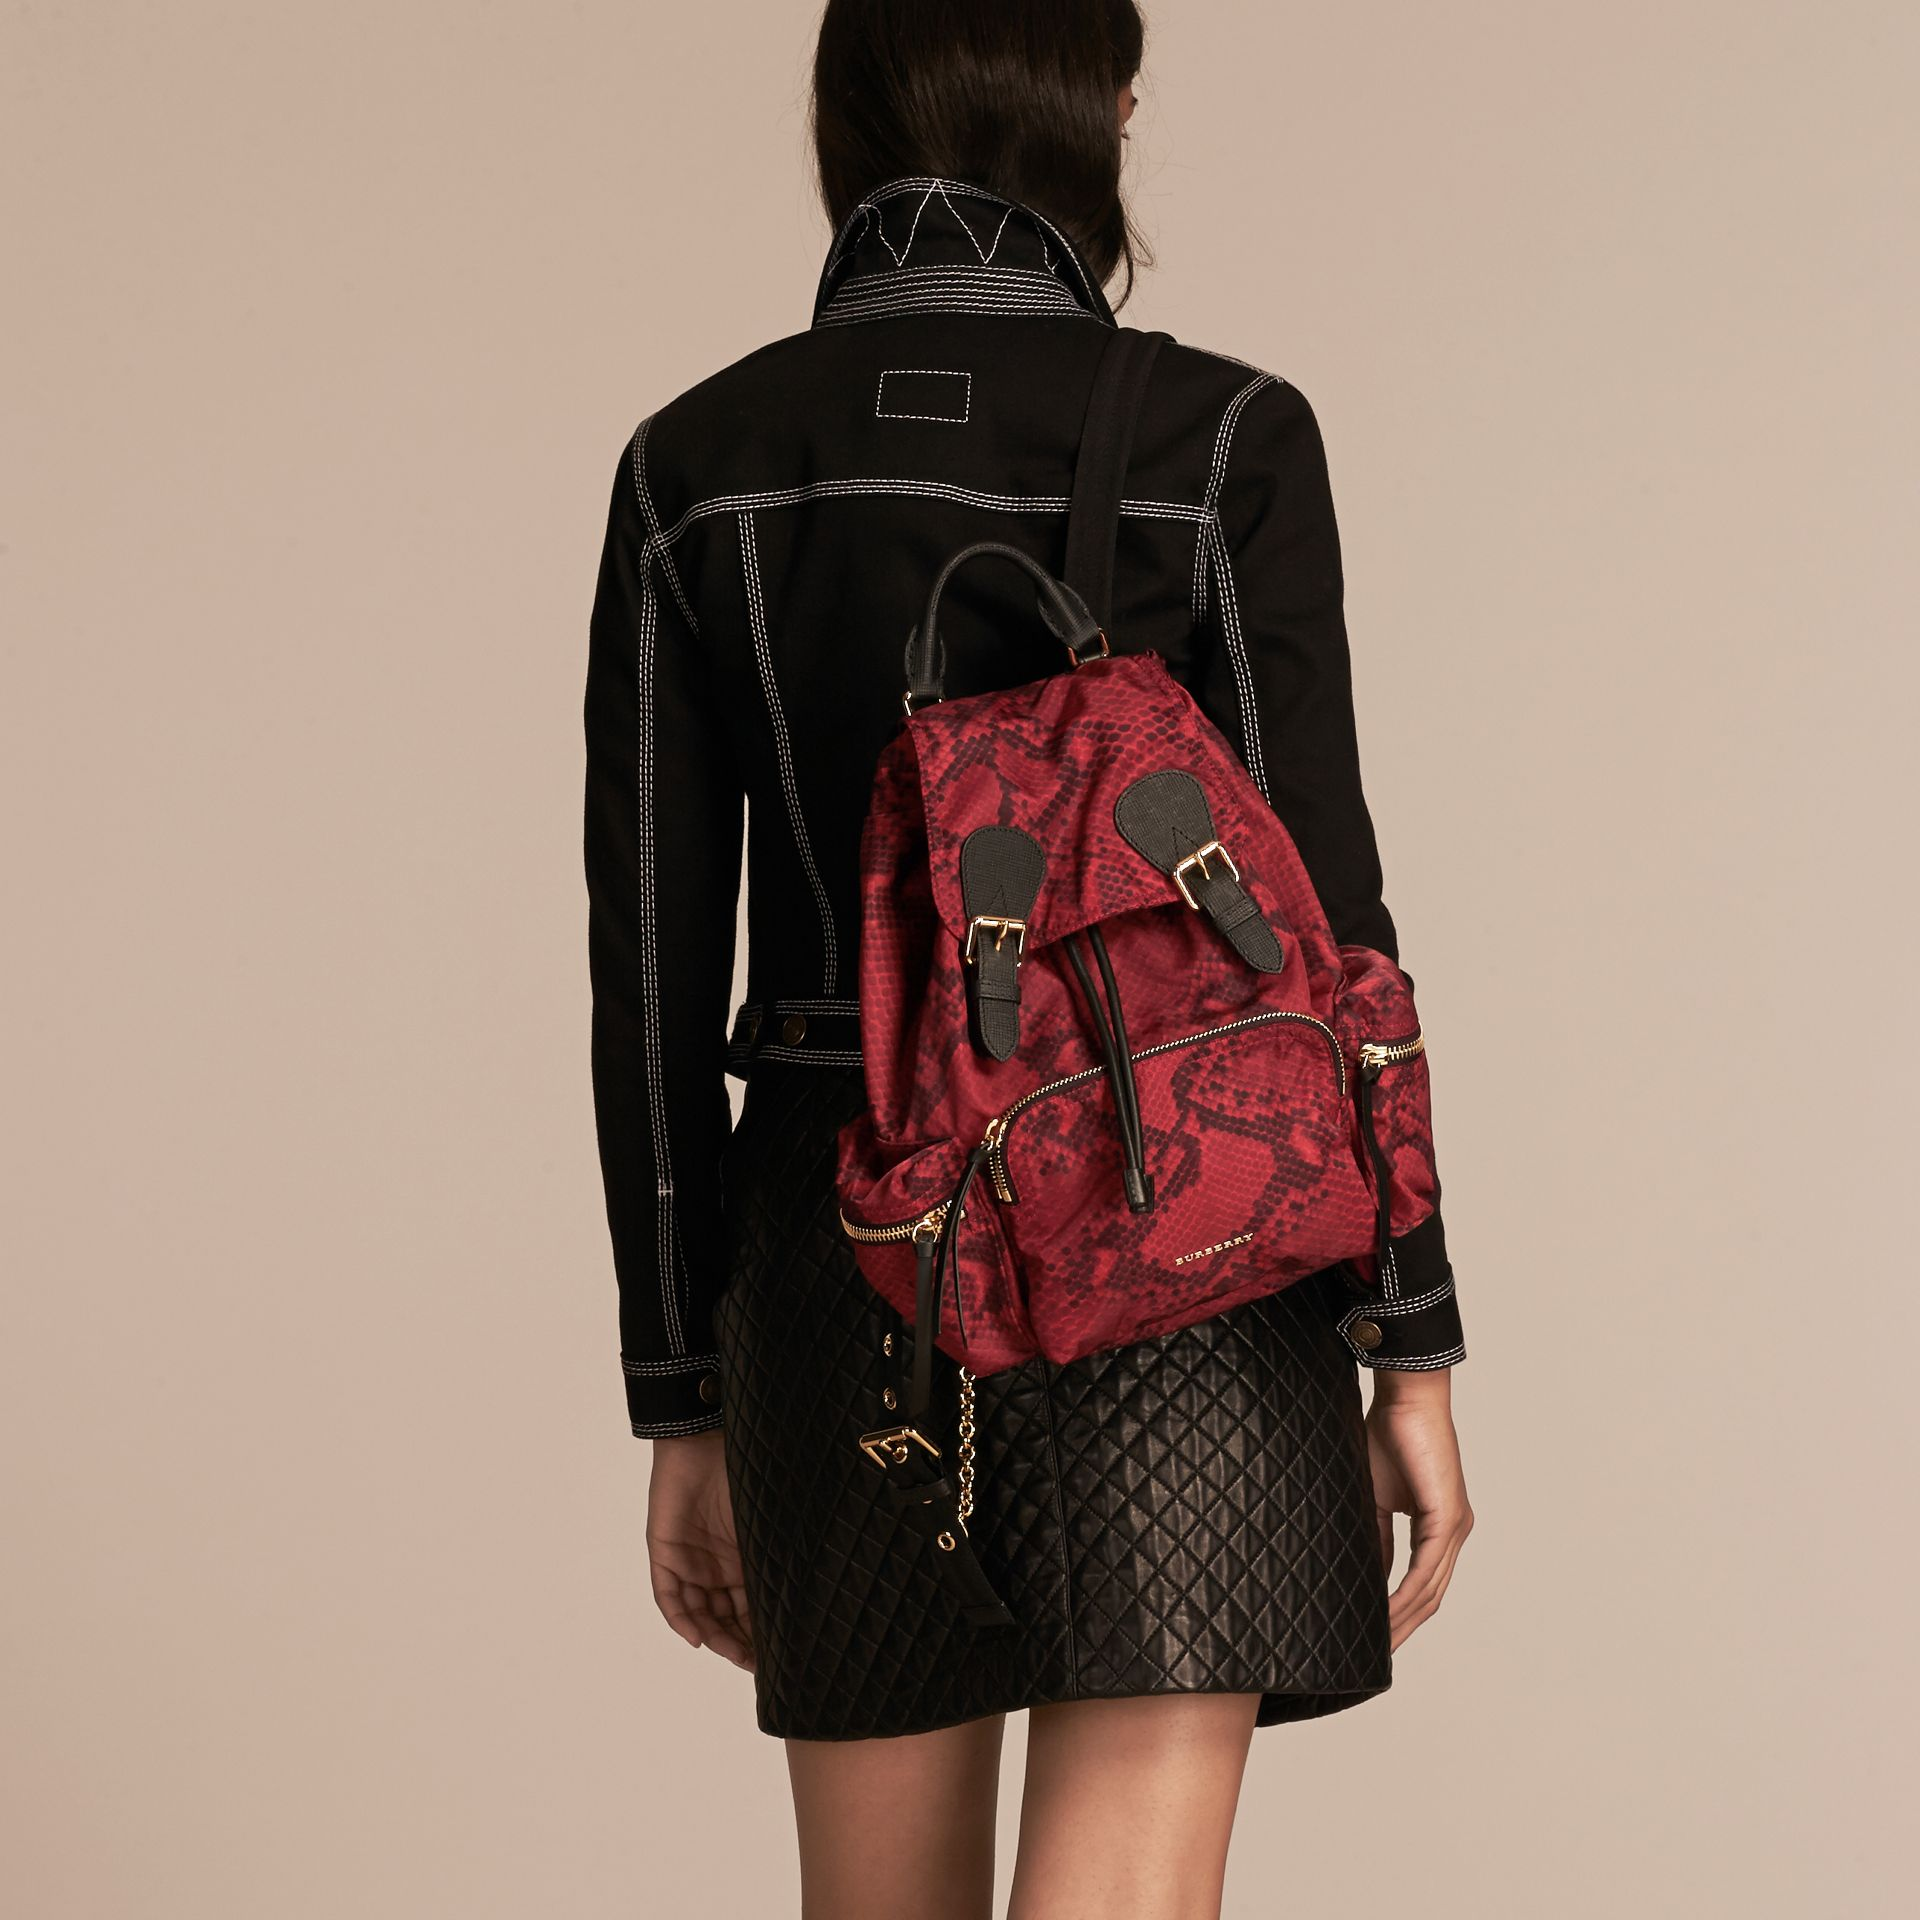 Burgundy red The Medium Rucksack in Python Print Nylon and Leather Burgundy Red - gallery image 3